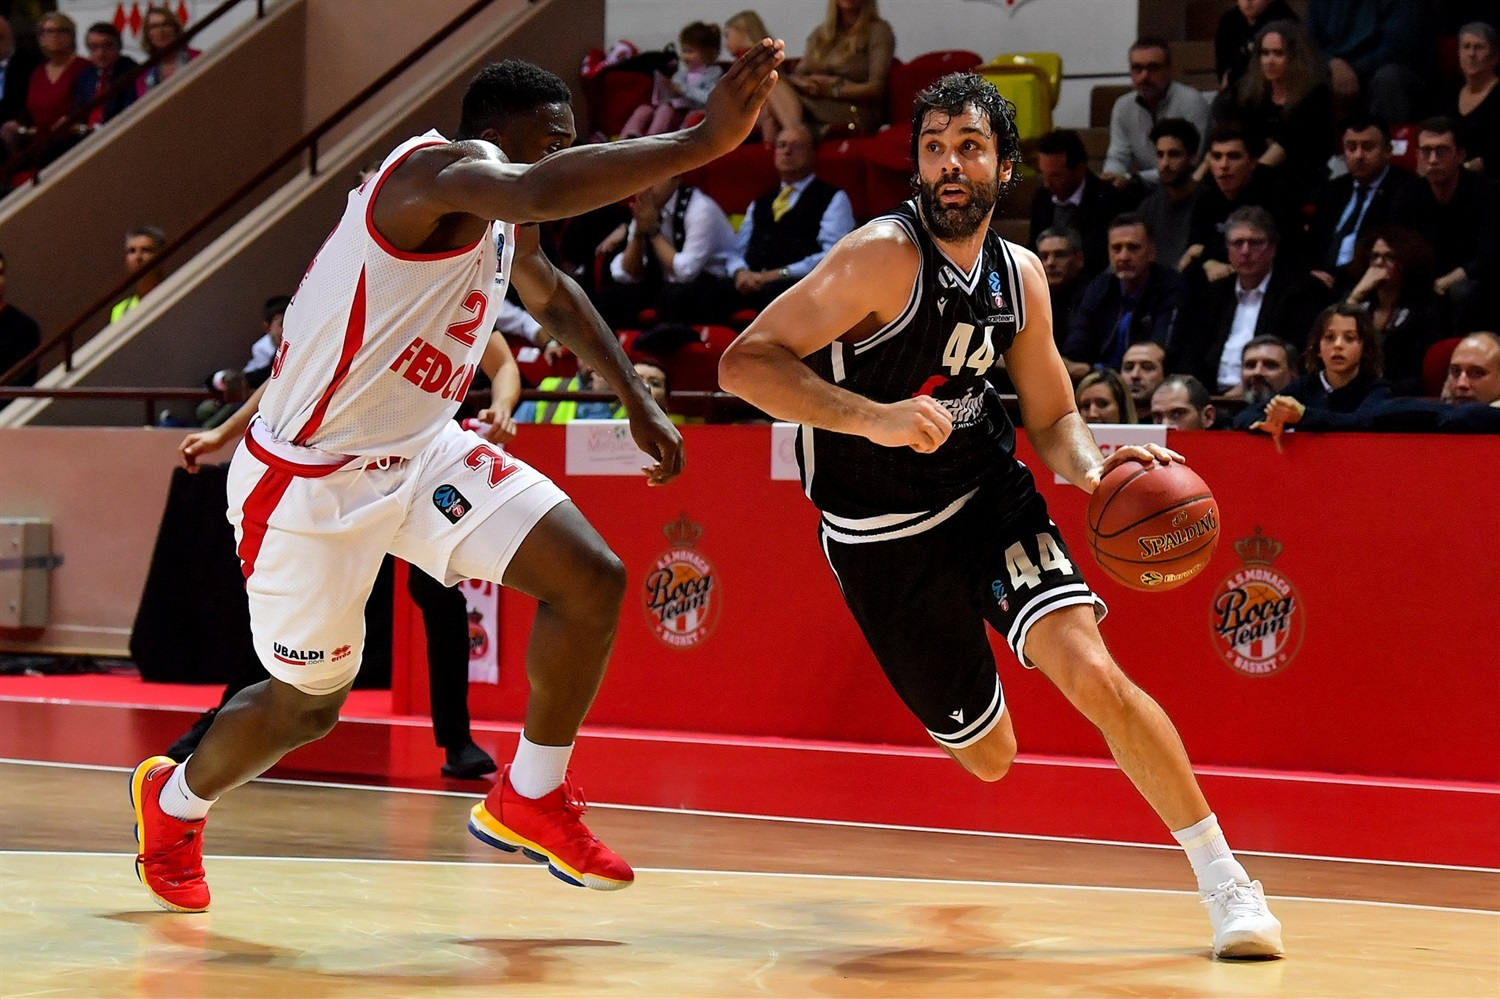 Milos Teodosic - Segafredo Virtus Bologna (photo Monaco) - EC19